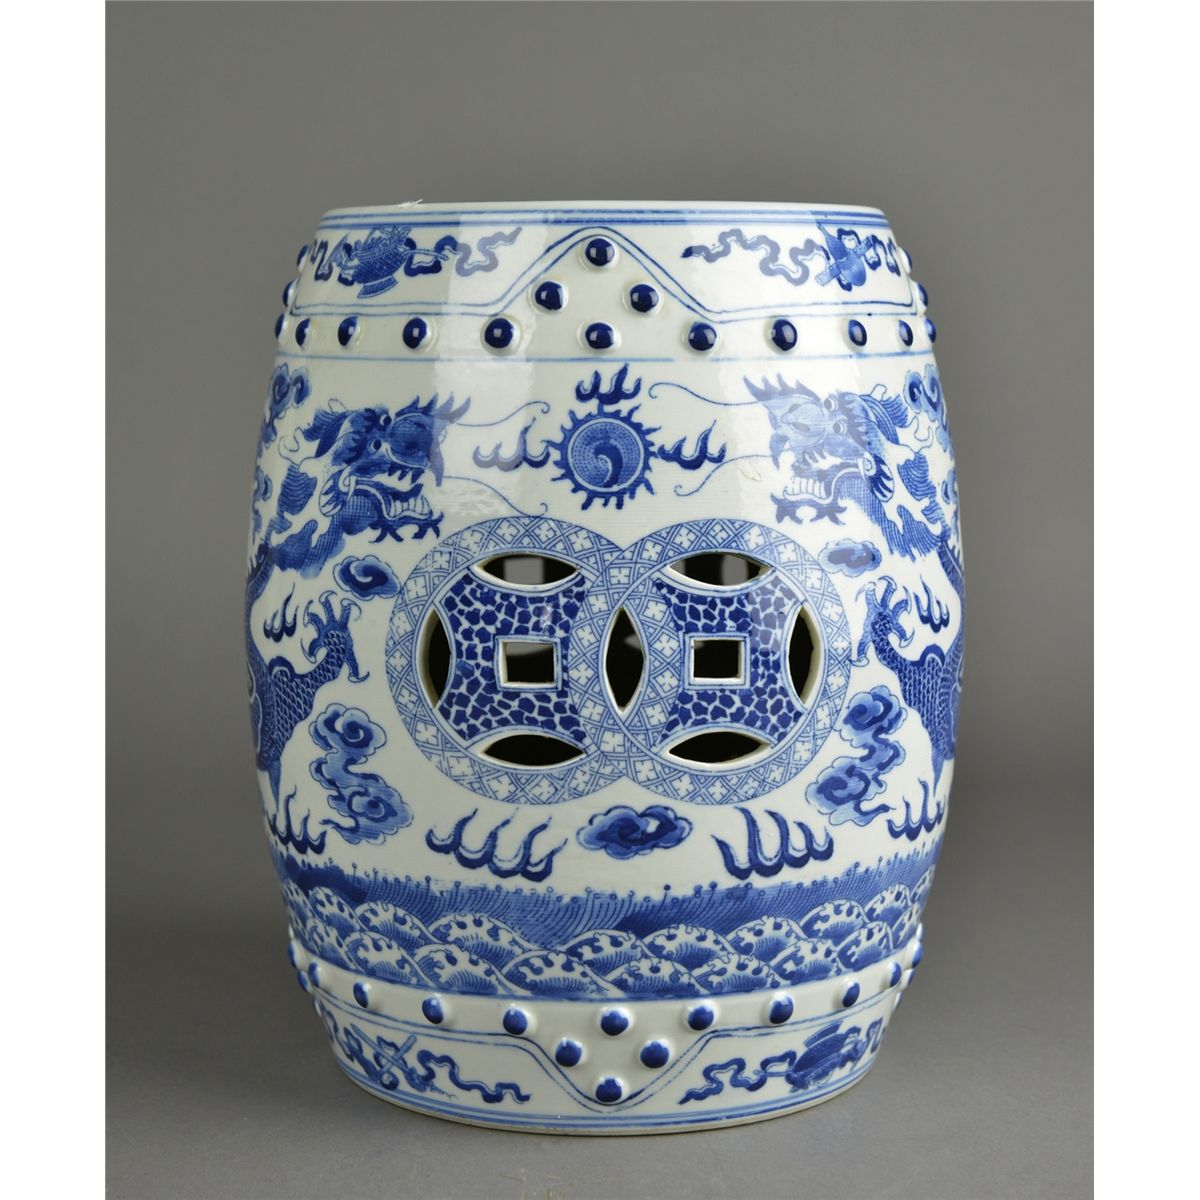 sc 1 st  iCollector.com & Chinese Blue u0026 White Porcelain Garden Stool islam-shia.org